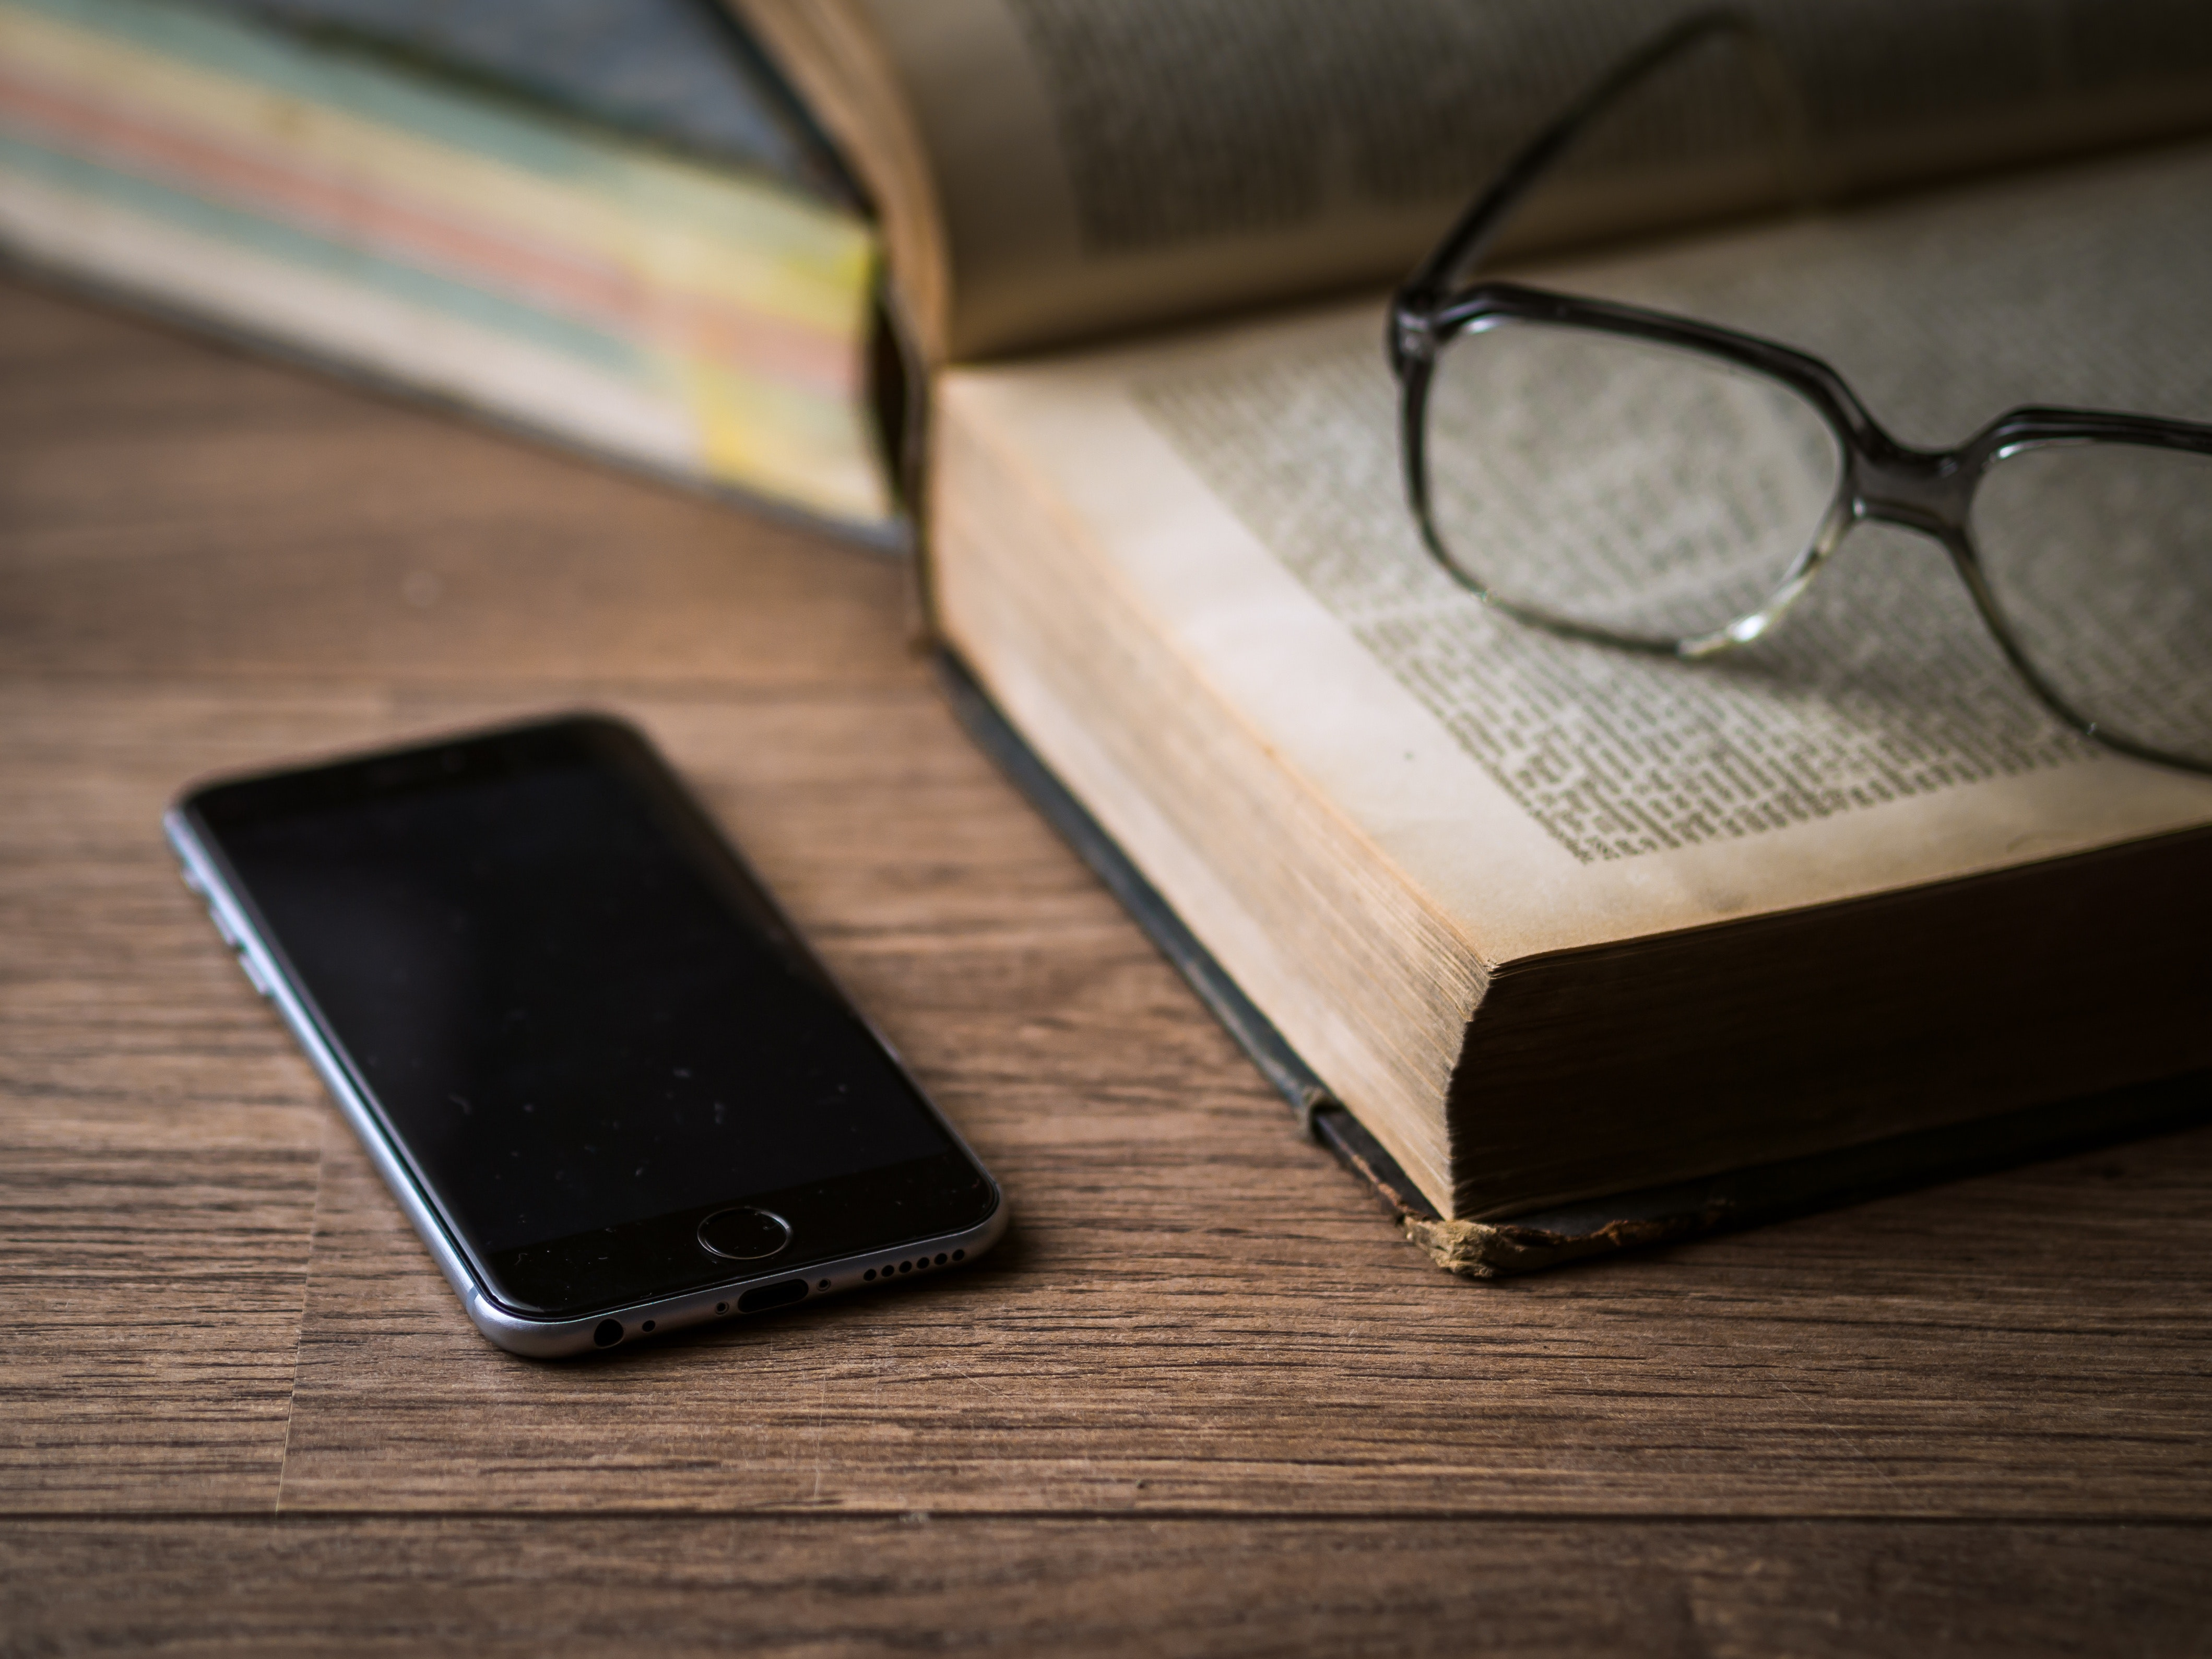 Space gray iphone 6 on top of brown table beside book photo